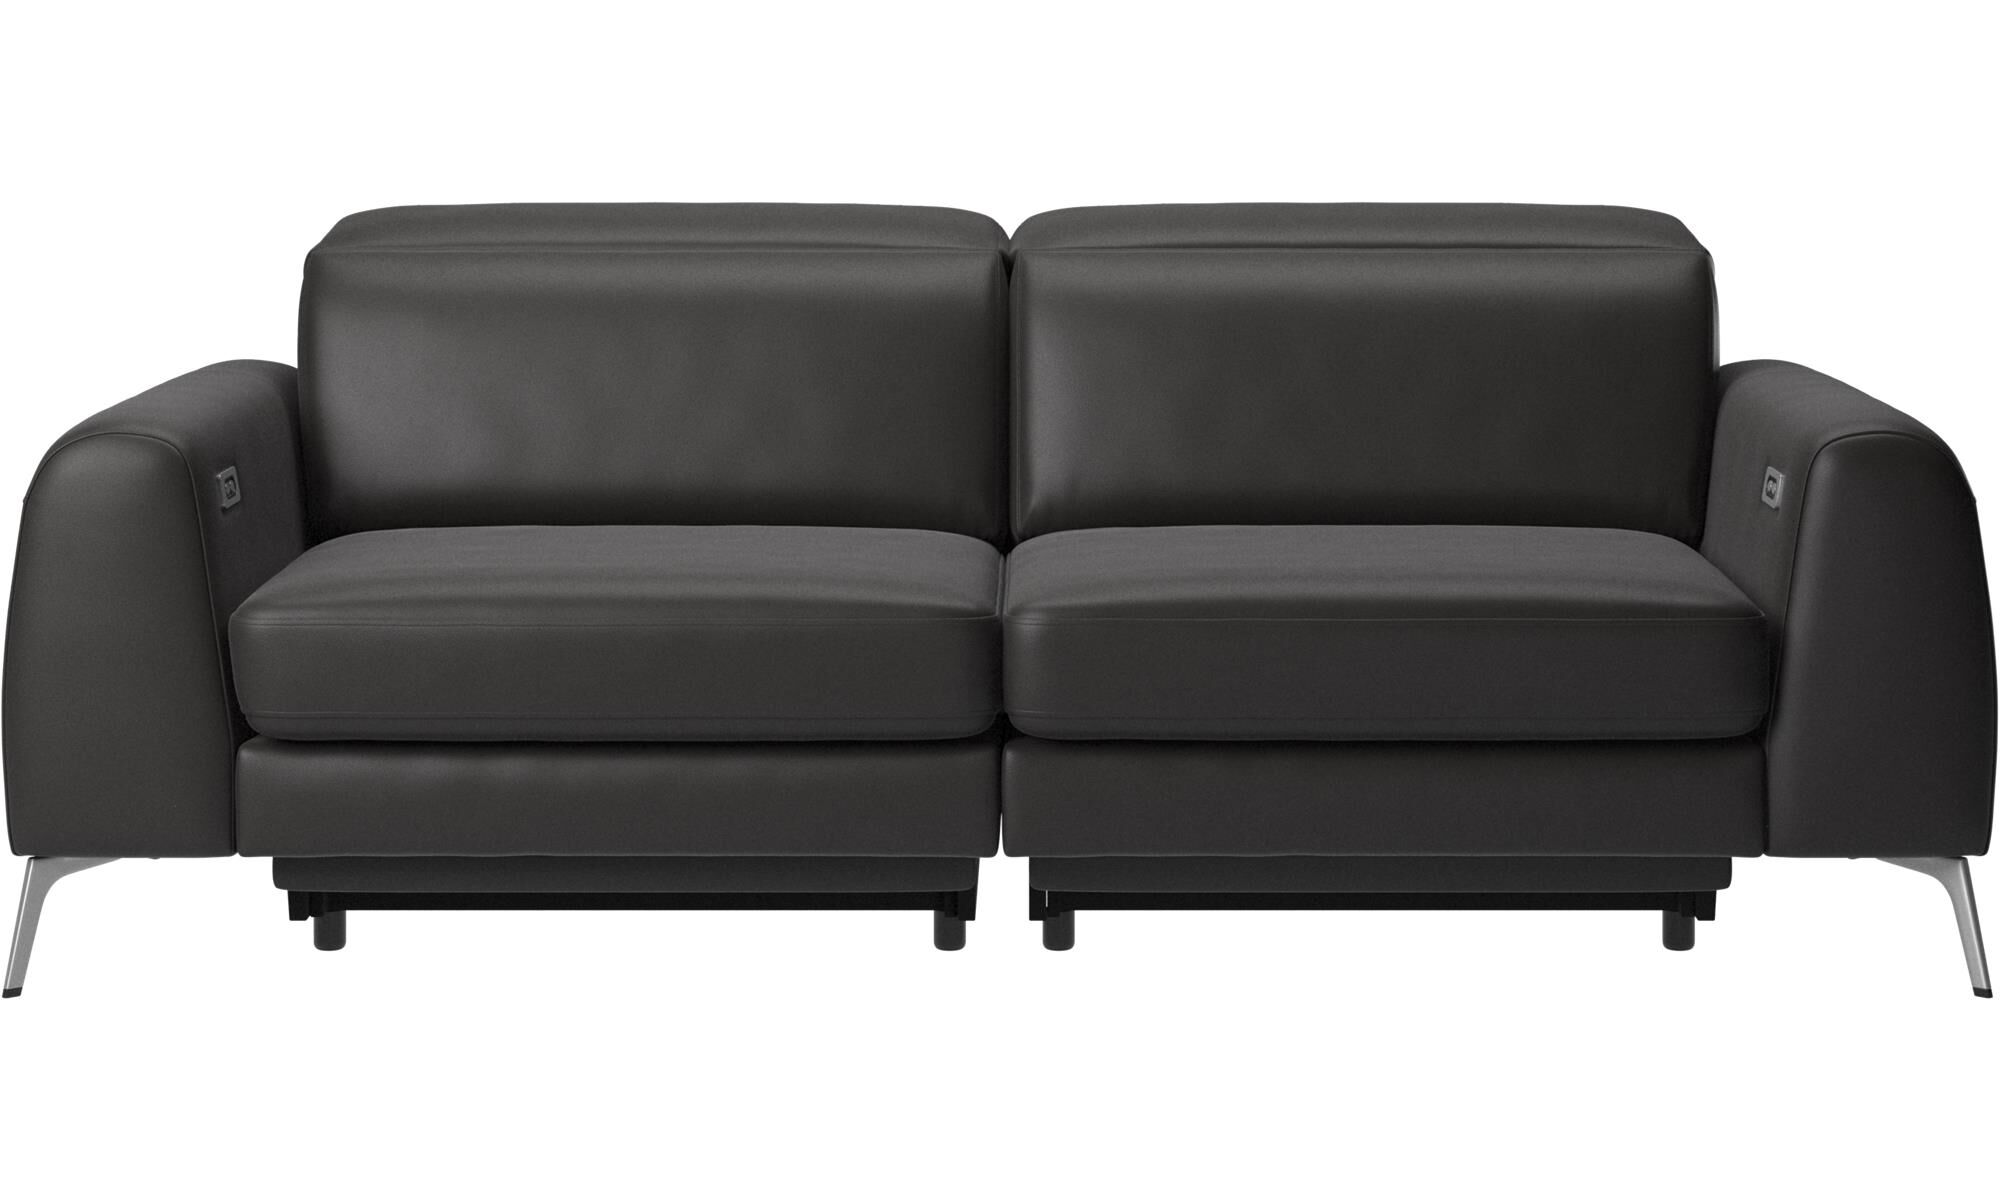 3 Seater Sofas   Madison Sofa With Electric Seat, Head And Footrest Motion  (transformer ...